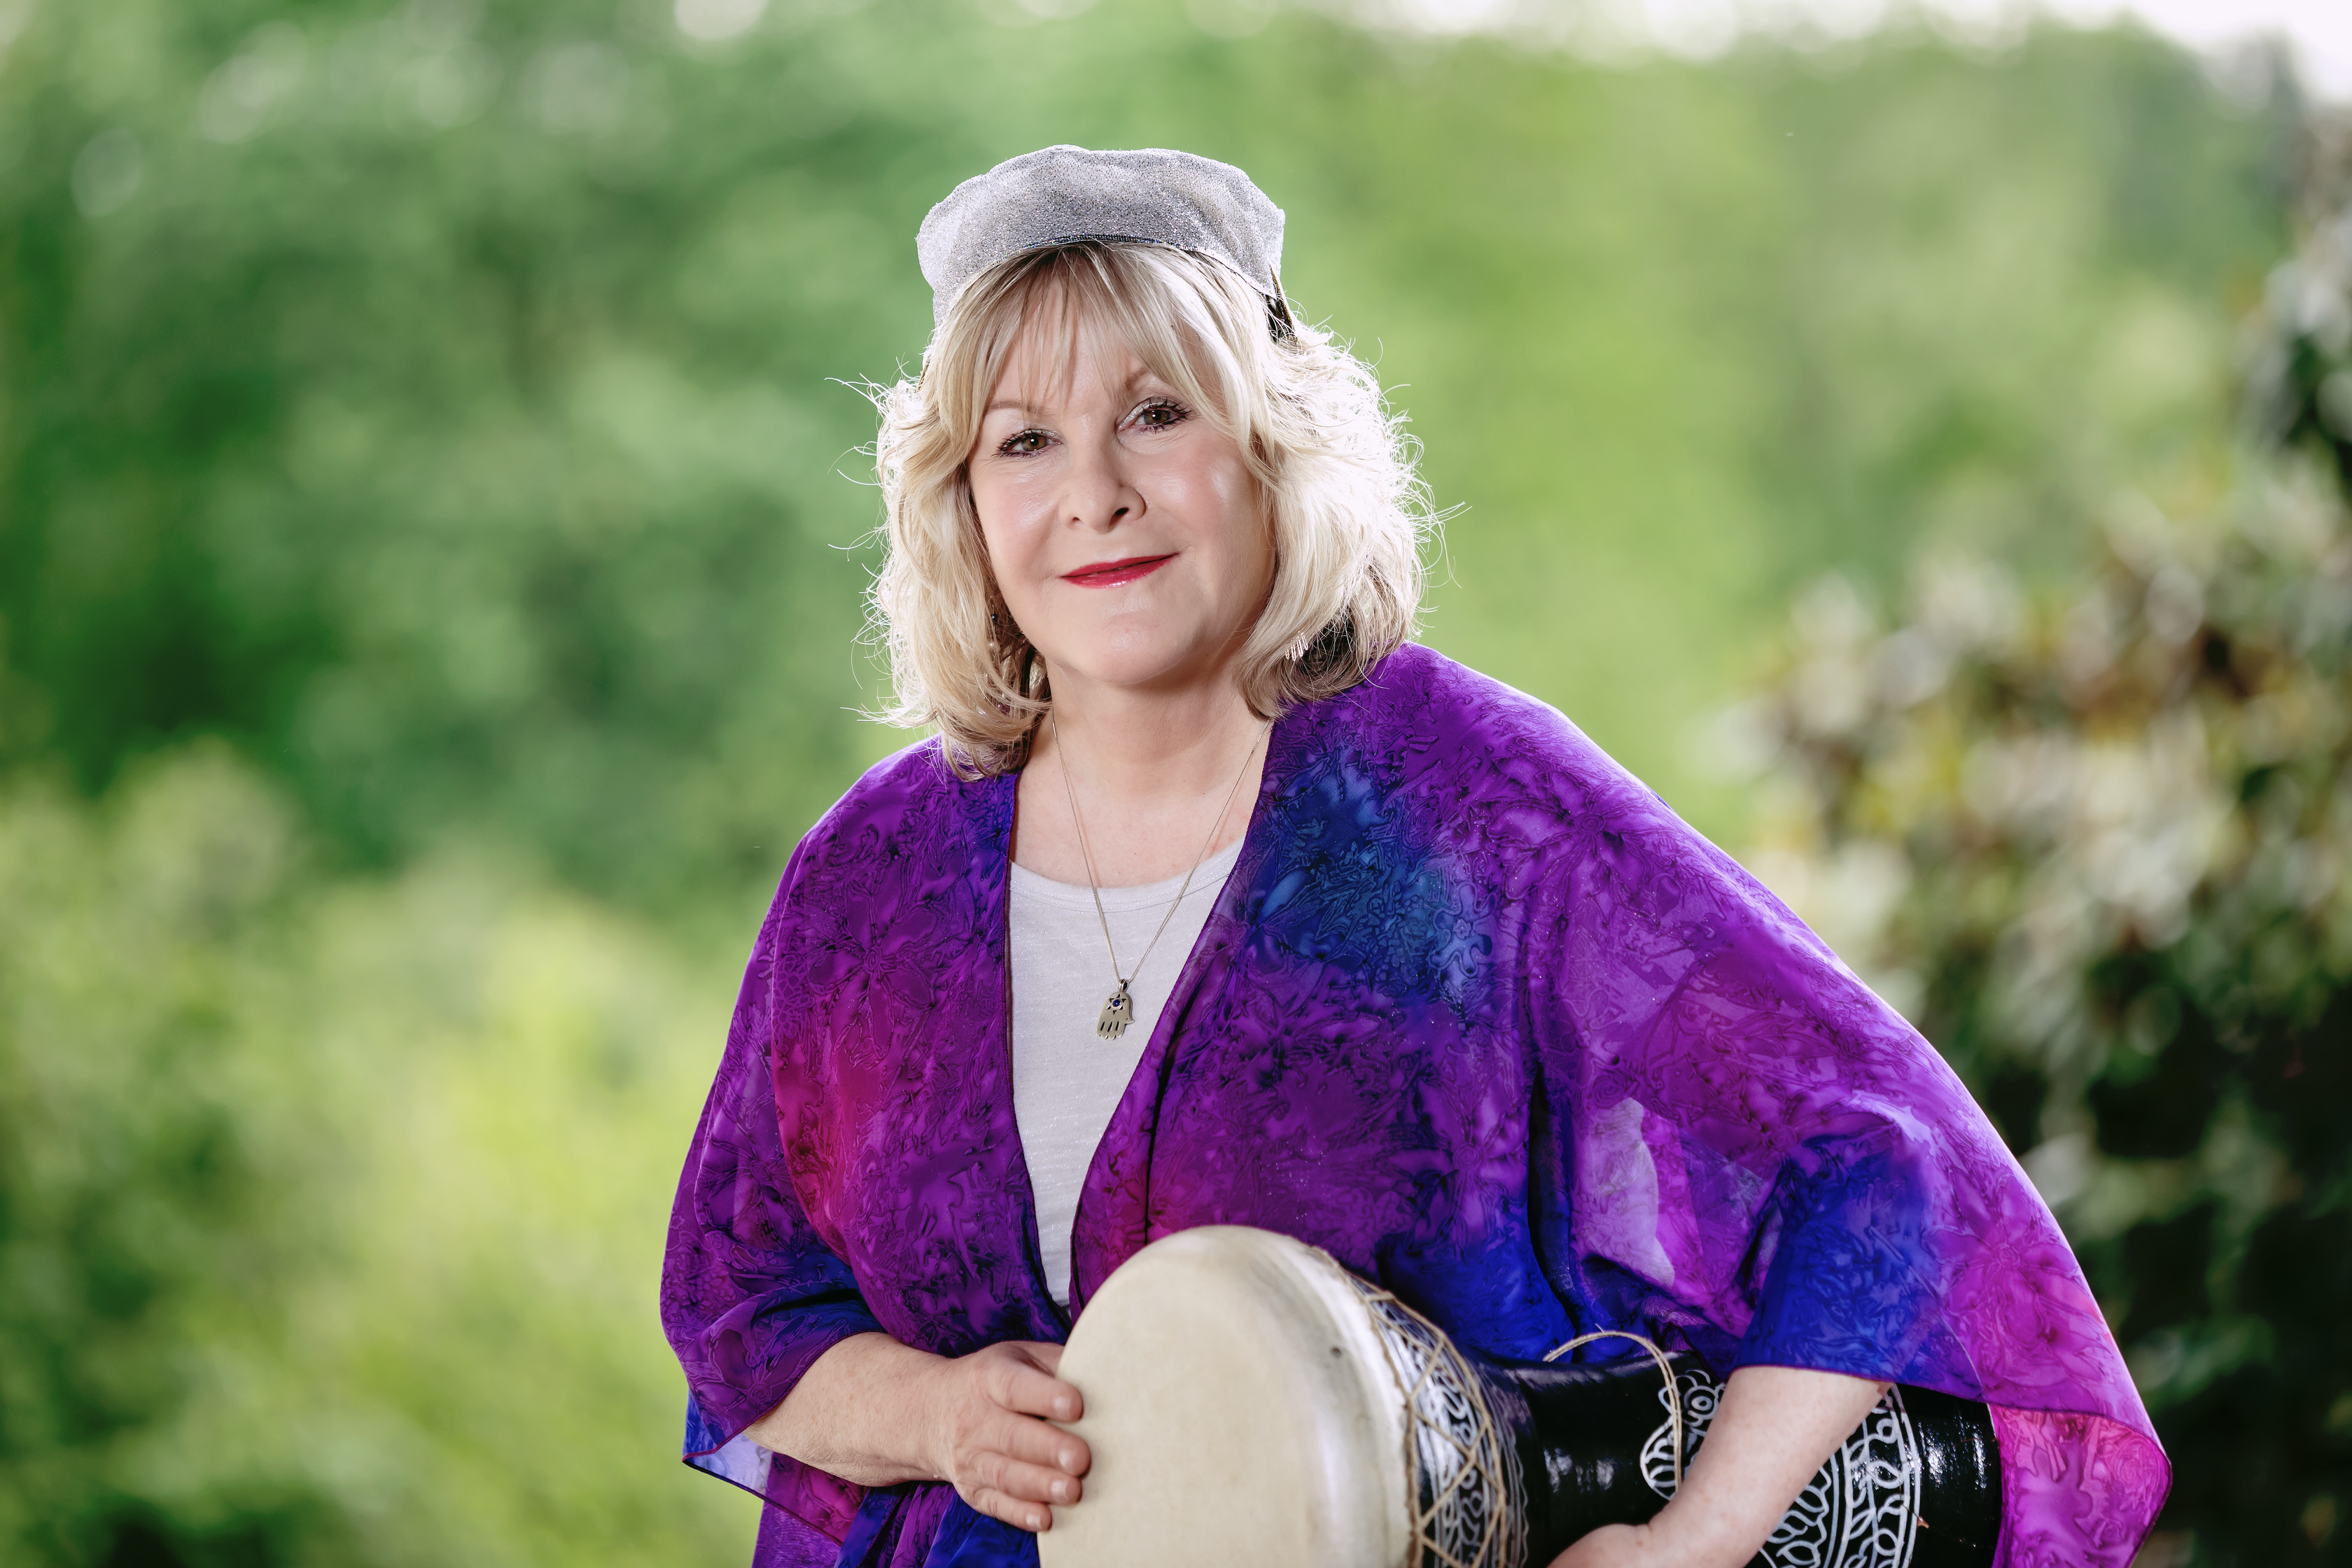 Headshot of Cantor Lisa Levine wearing a blue prayer shawl and holding a small drum